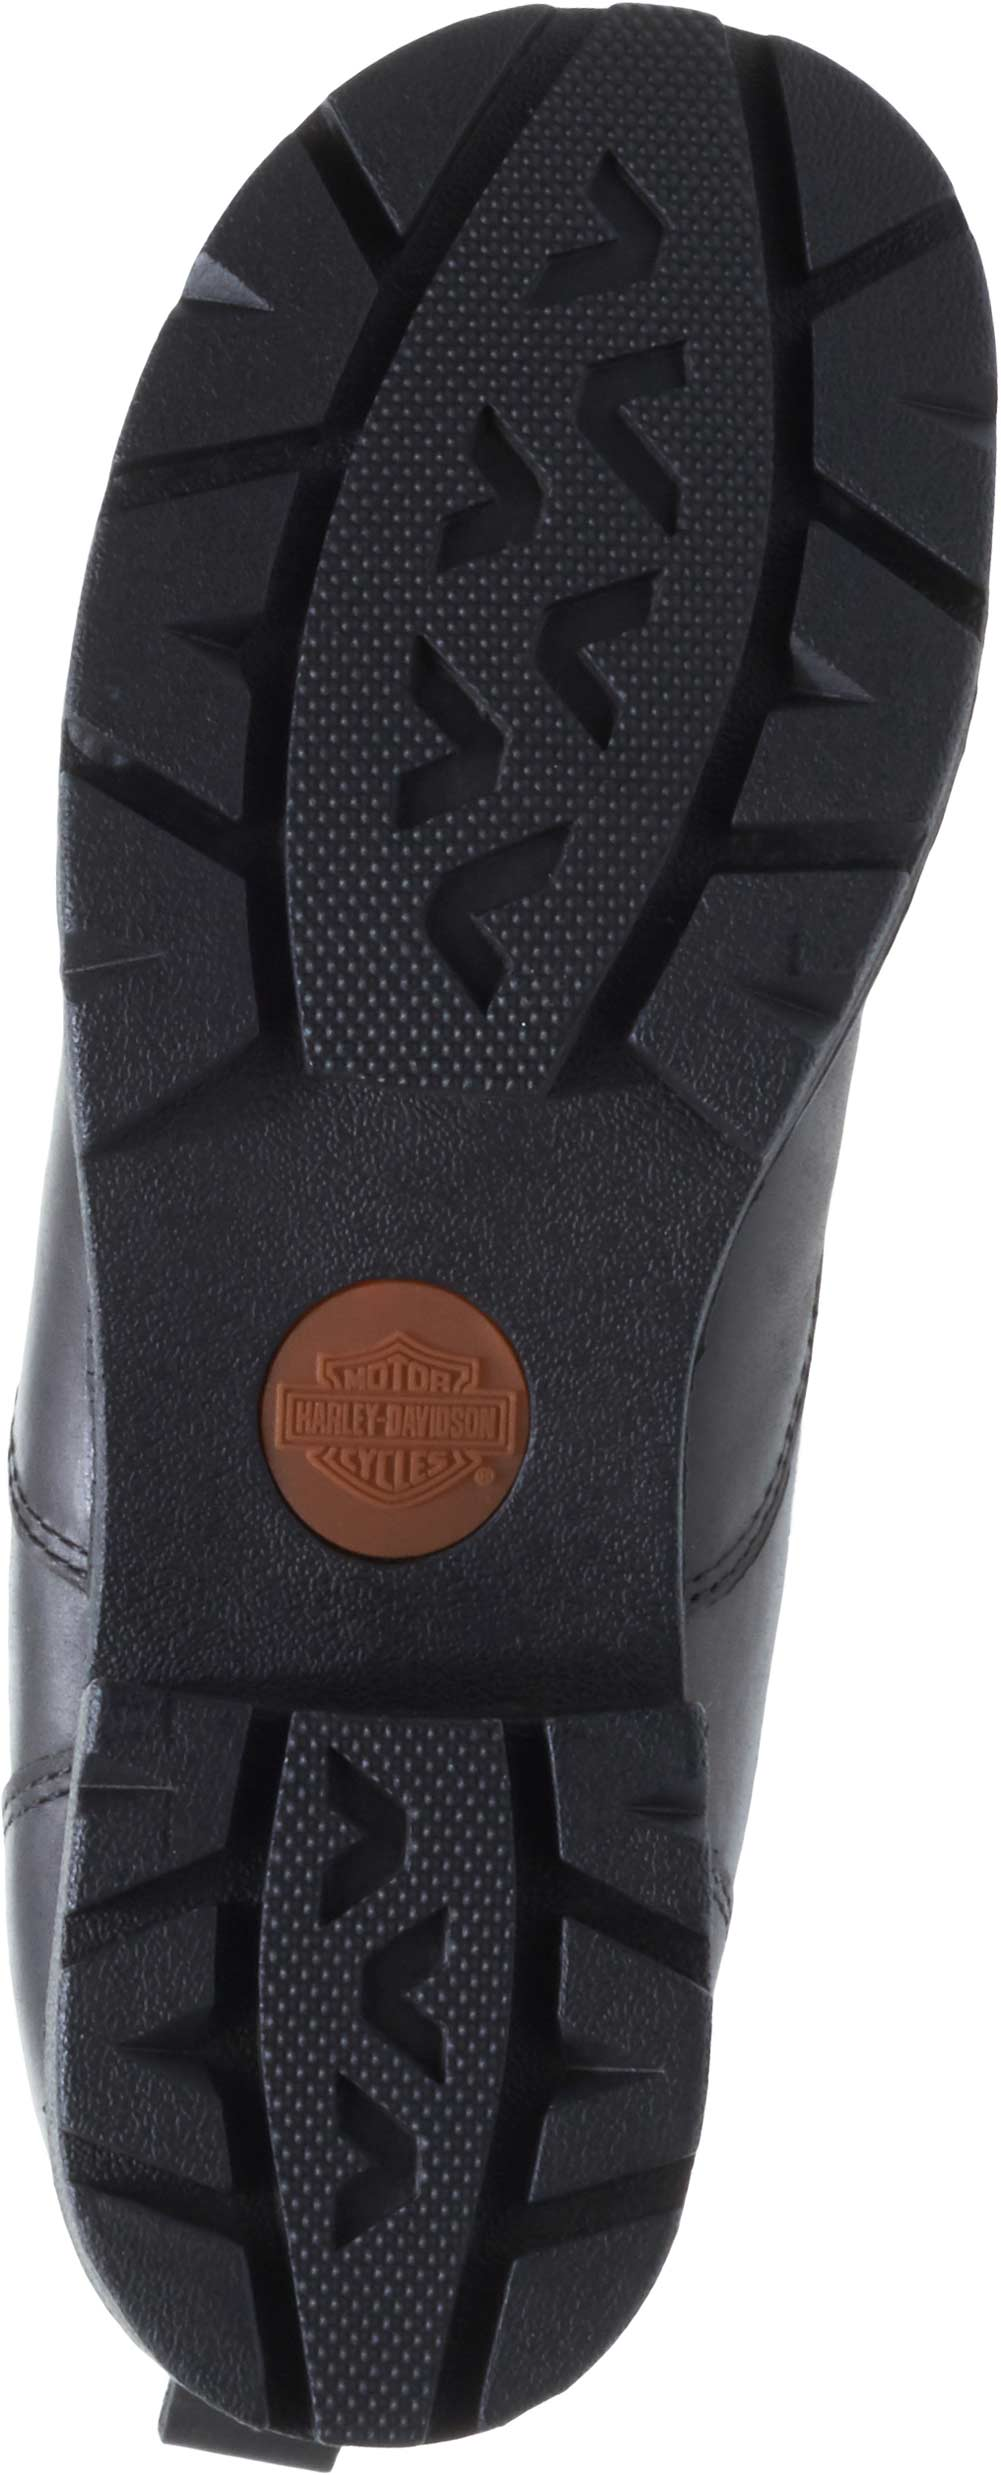 a35f193709a4 Harley-Davidson Women s Amherst 5.5-Inch Leather Motorcycle Boots ...